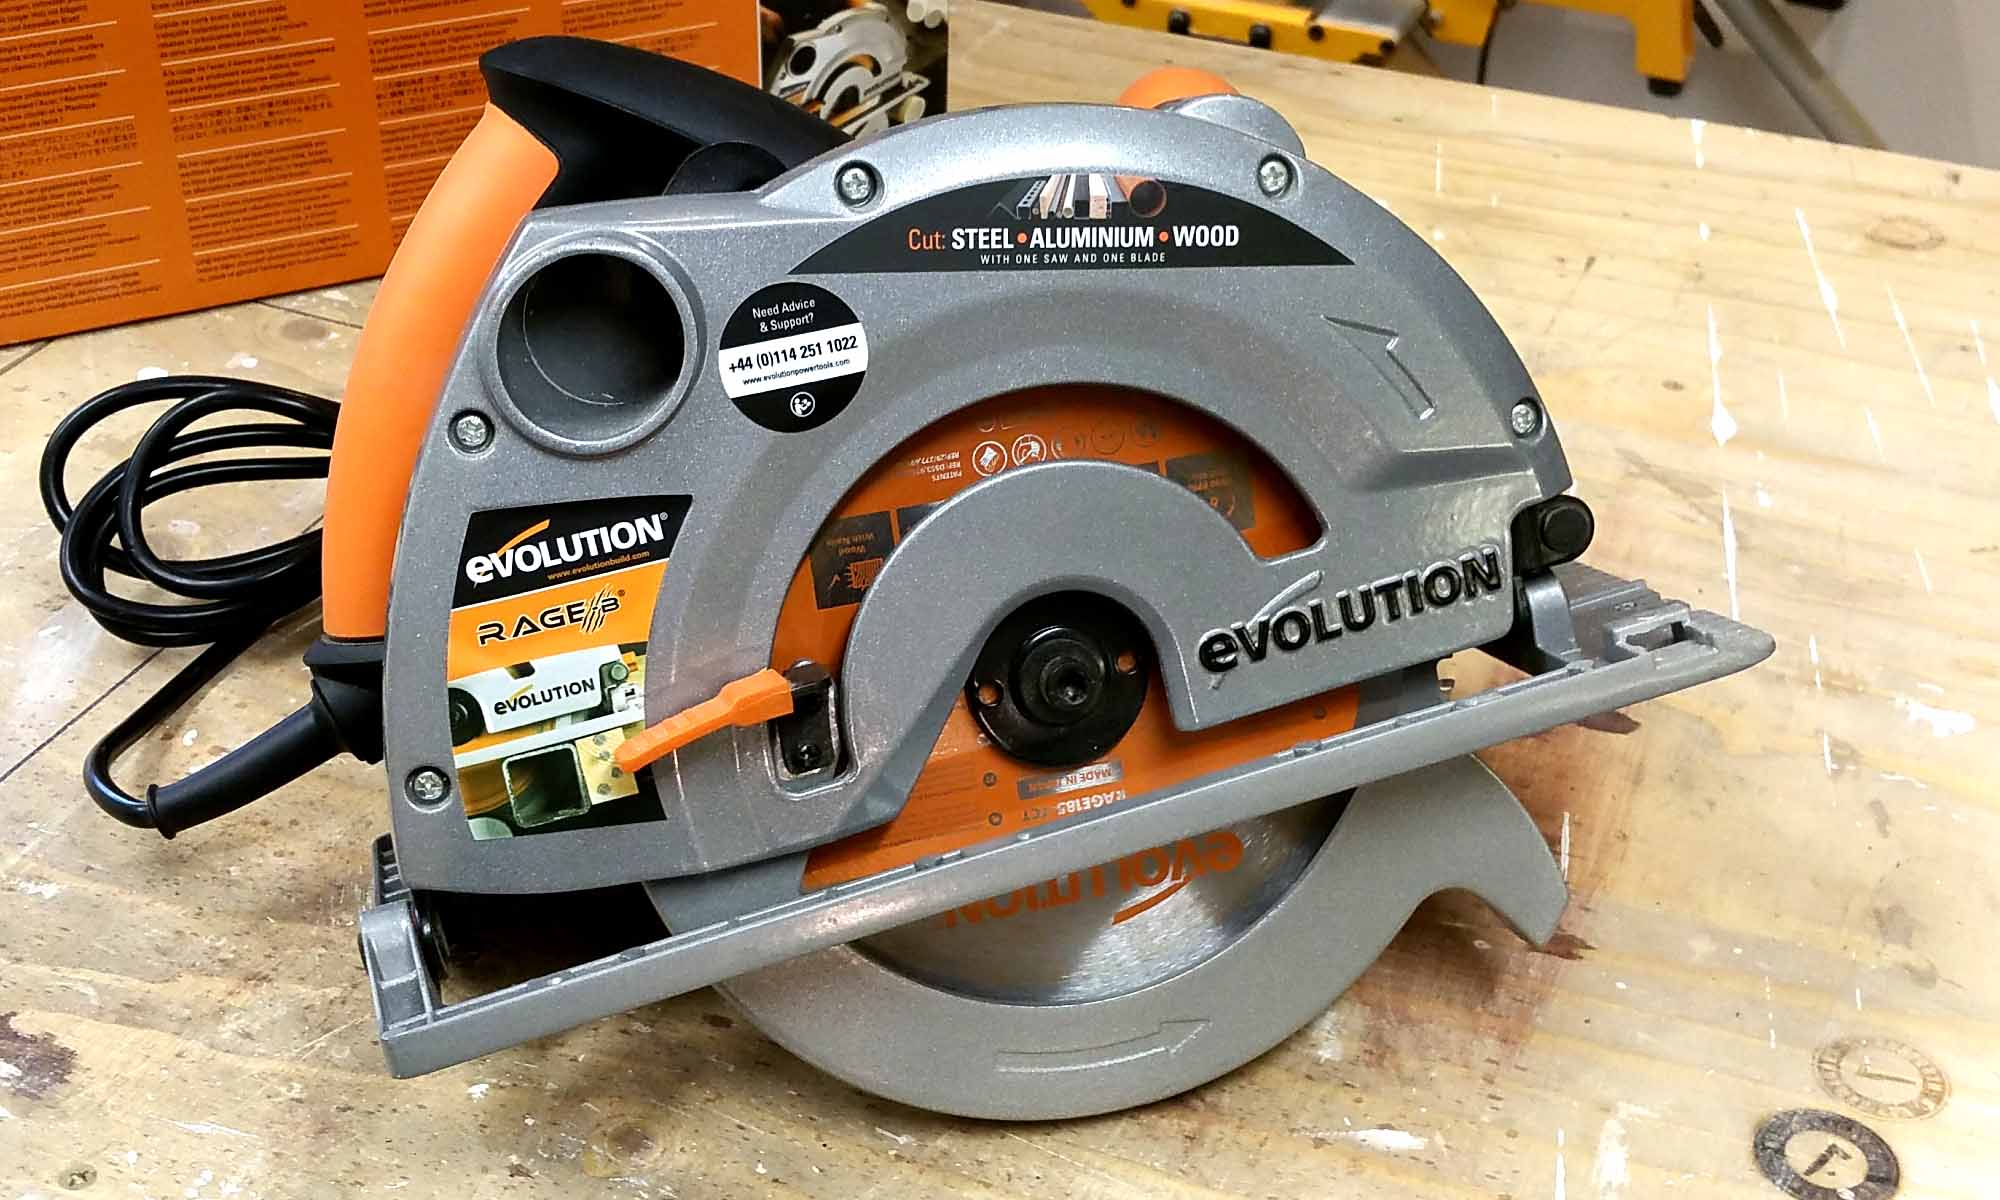 Evolution Circular Saw Review